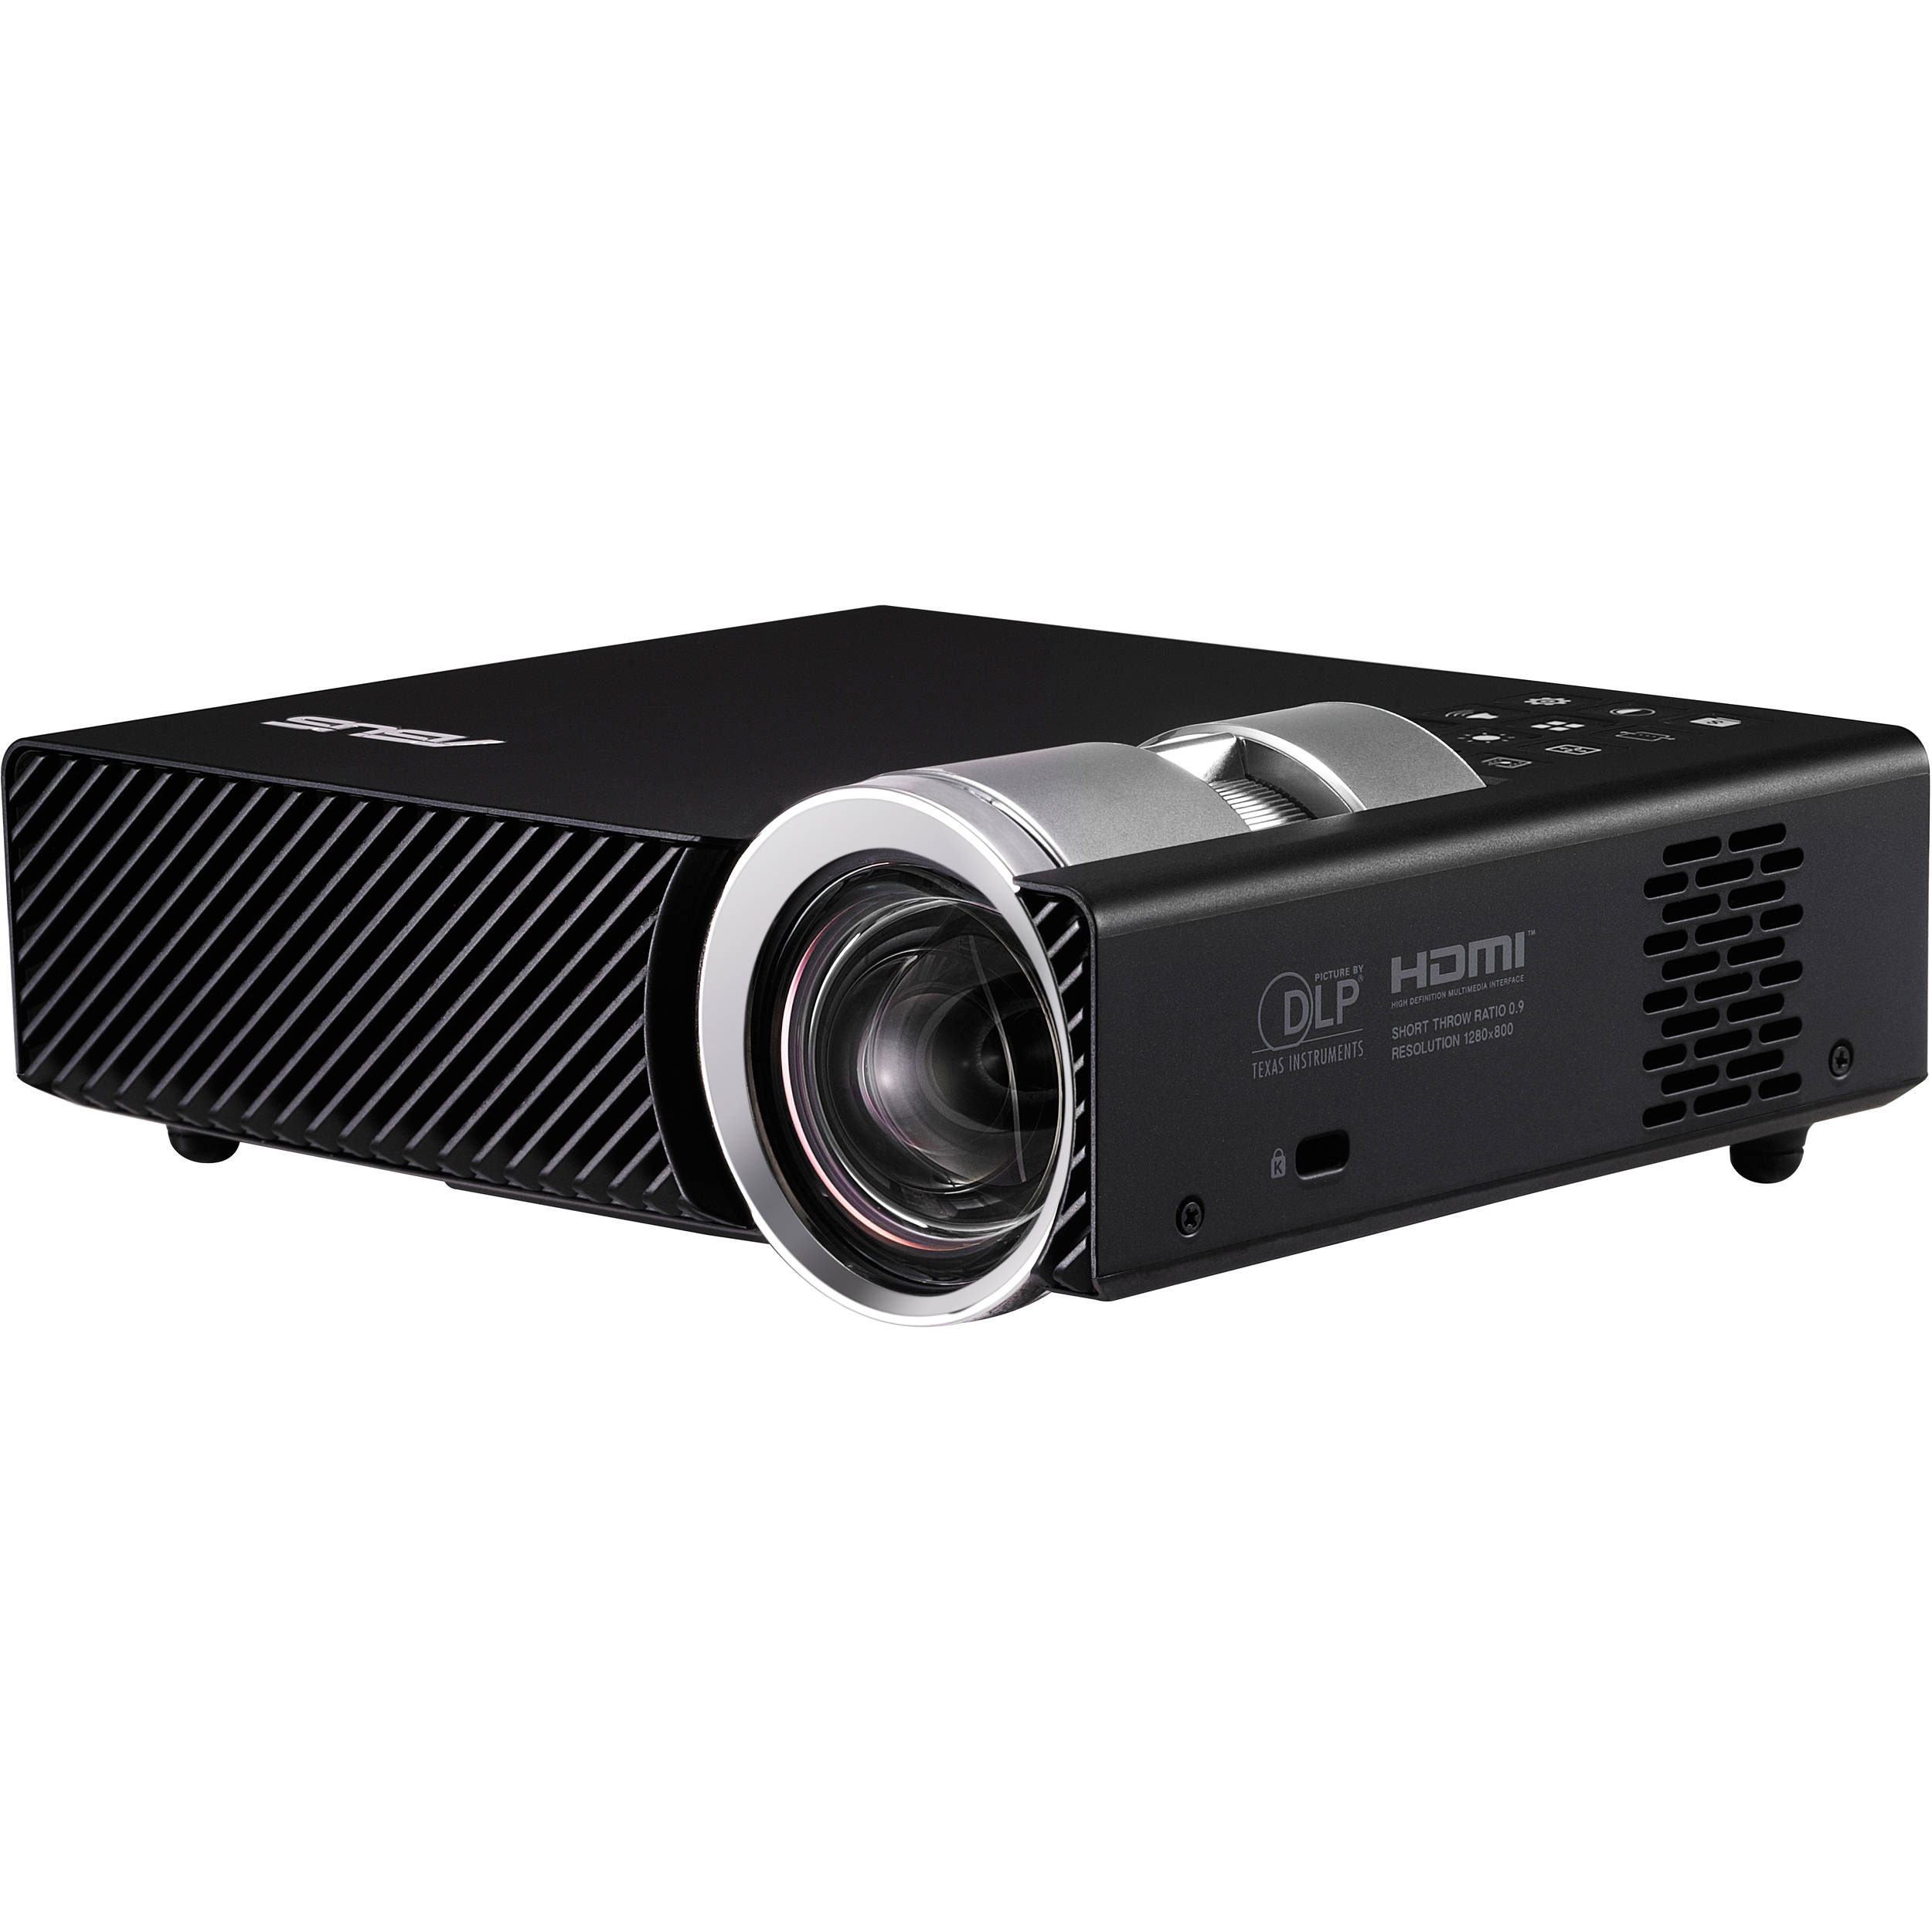 Asus b1m wireless led projector for Best portable wireless projector